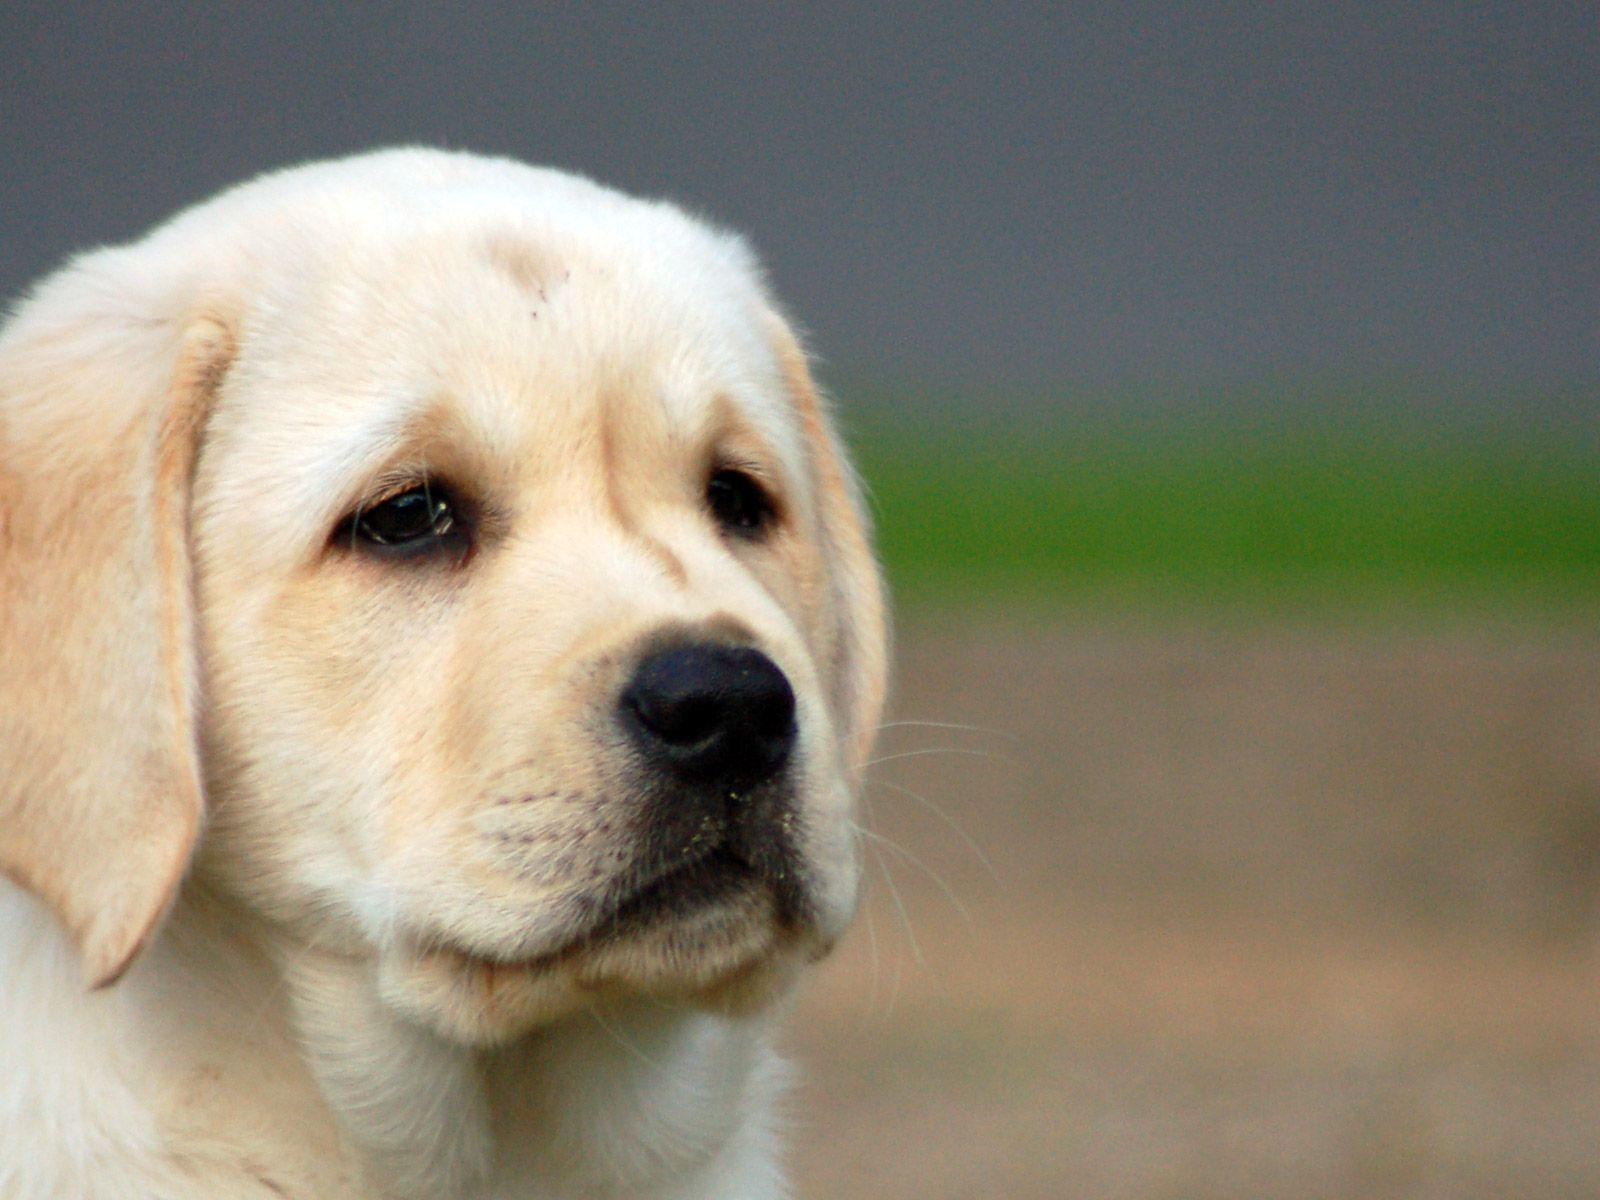 Labrador Puppies Wallpapers | HD Wallpapers Base - m5x.